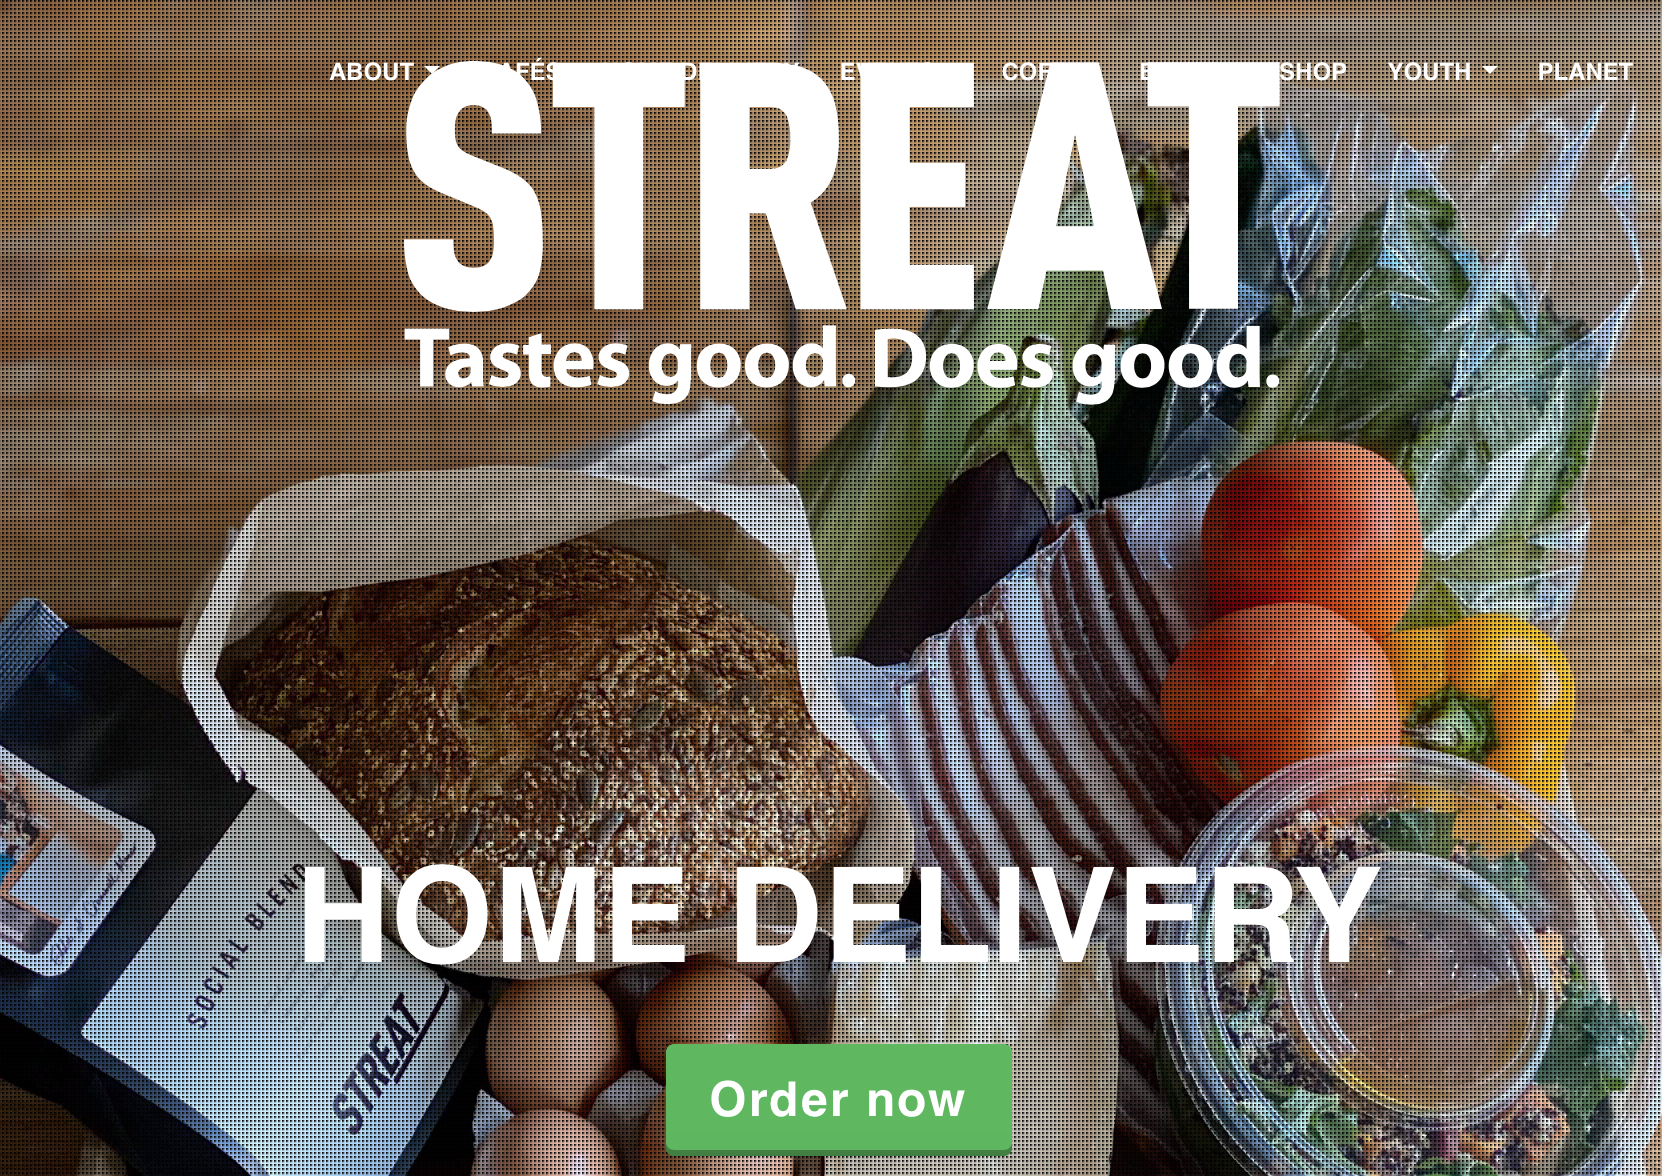 STREAT home delivery Melbourne Food Orders for Good